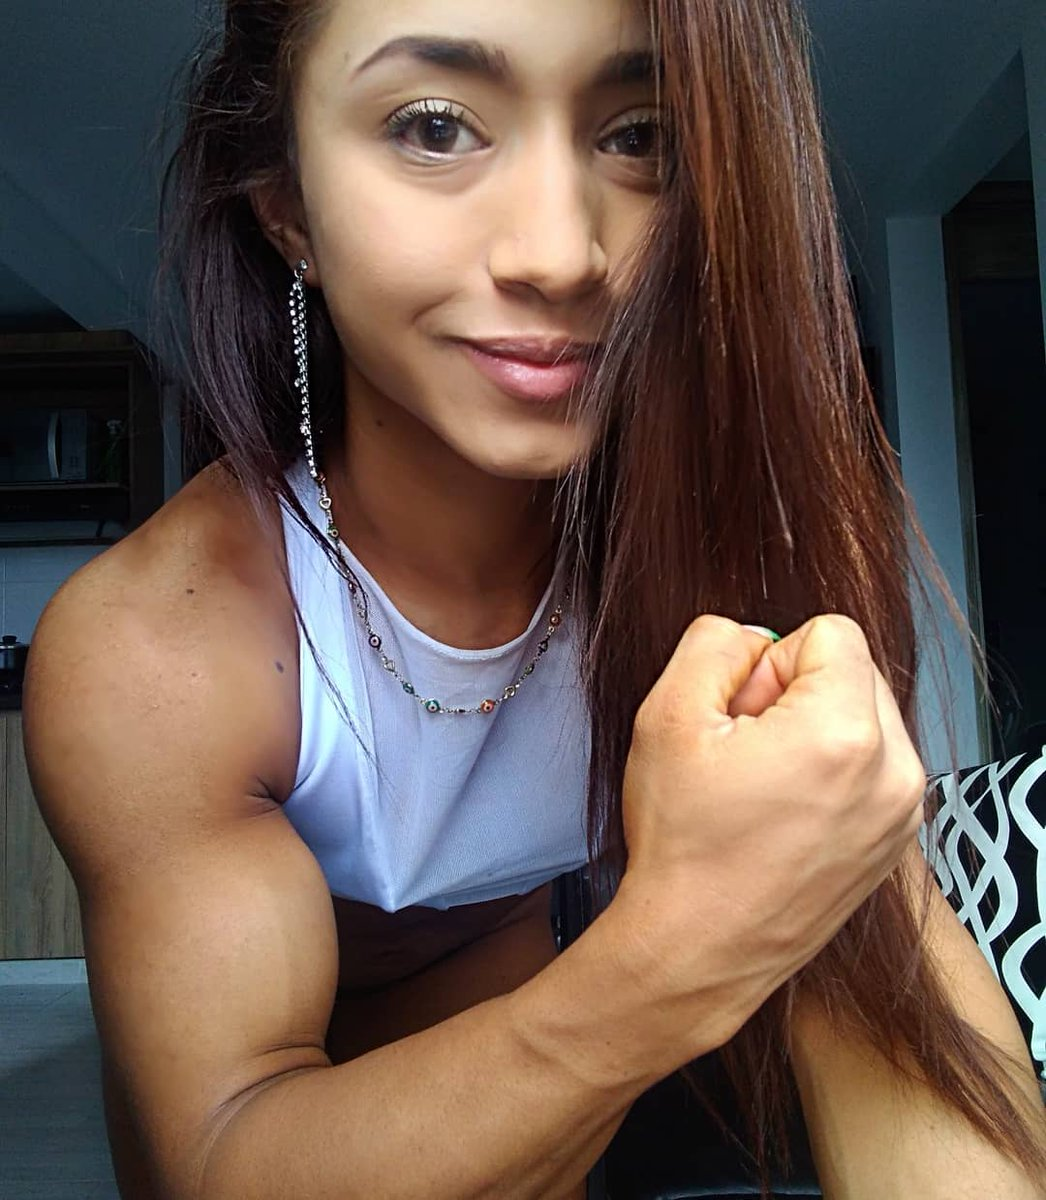 Hotbeef On Twitter Where Do I Find These Cute Fit Women Besides The Gym Or Beach Or Anywhere Outside My House Fernandaperez See more ideas about women, fit women, fitness fashion. gym or beach or anywhere outside